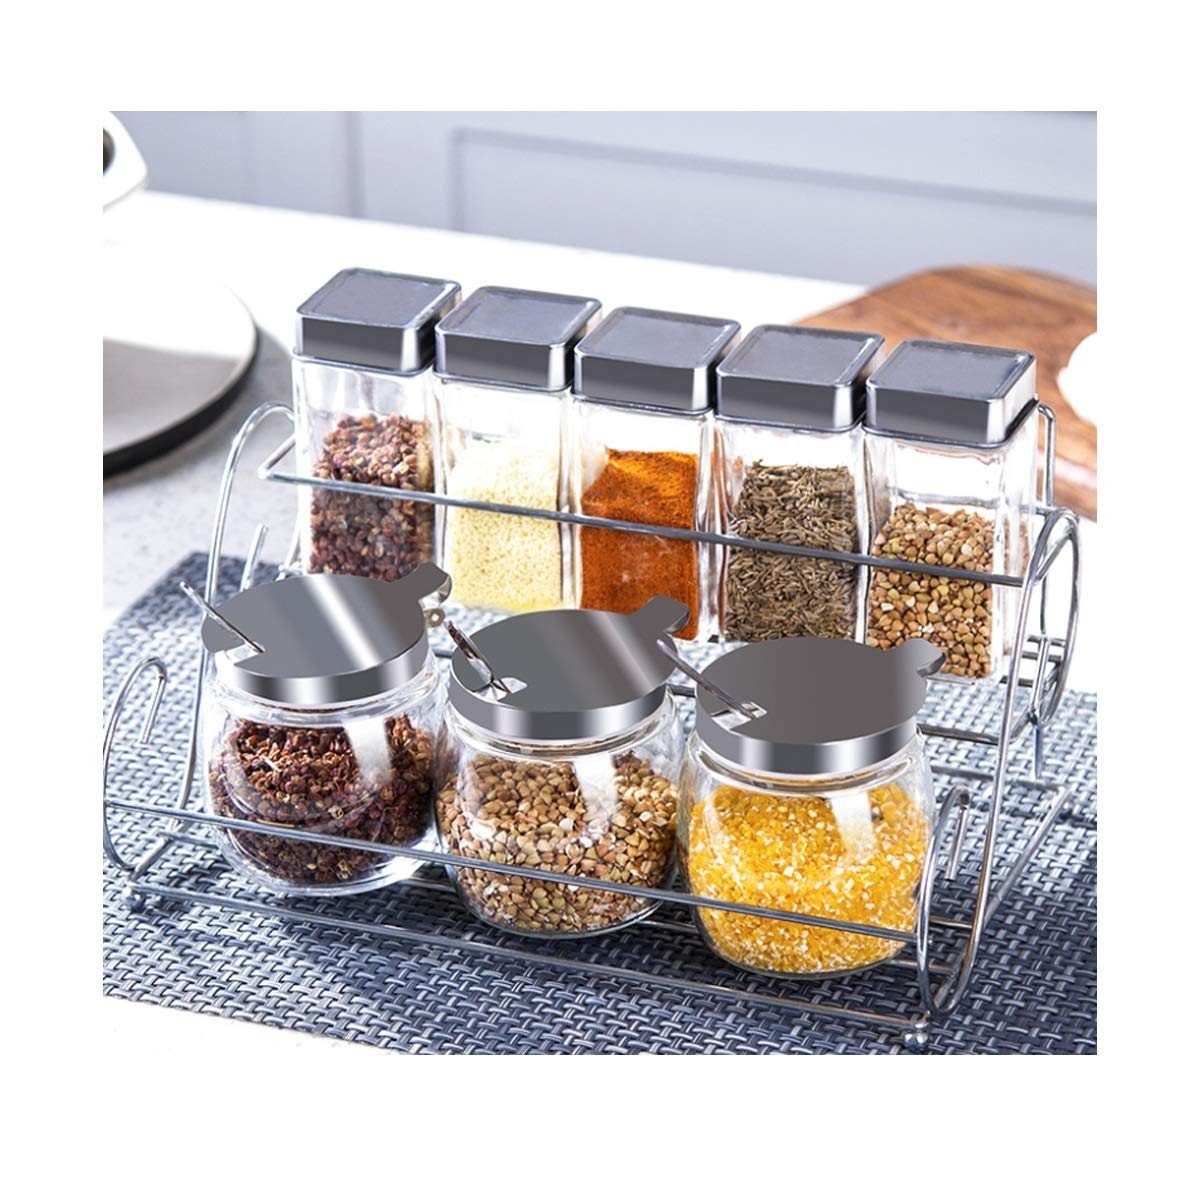 MINGRUIGONGMAO Kitchen Glass Seasoning Box, Set Household Combination, Salt Shaker, Seasoning Jar, Seasoning Storage Box, Seasoning Bottle Plush toys (Size : A) by MINGRUIGONGMAO